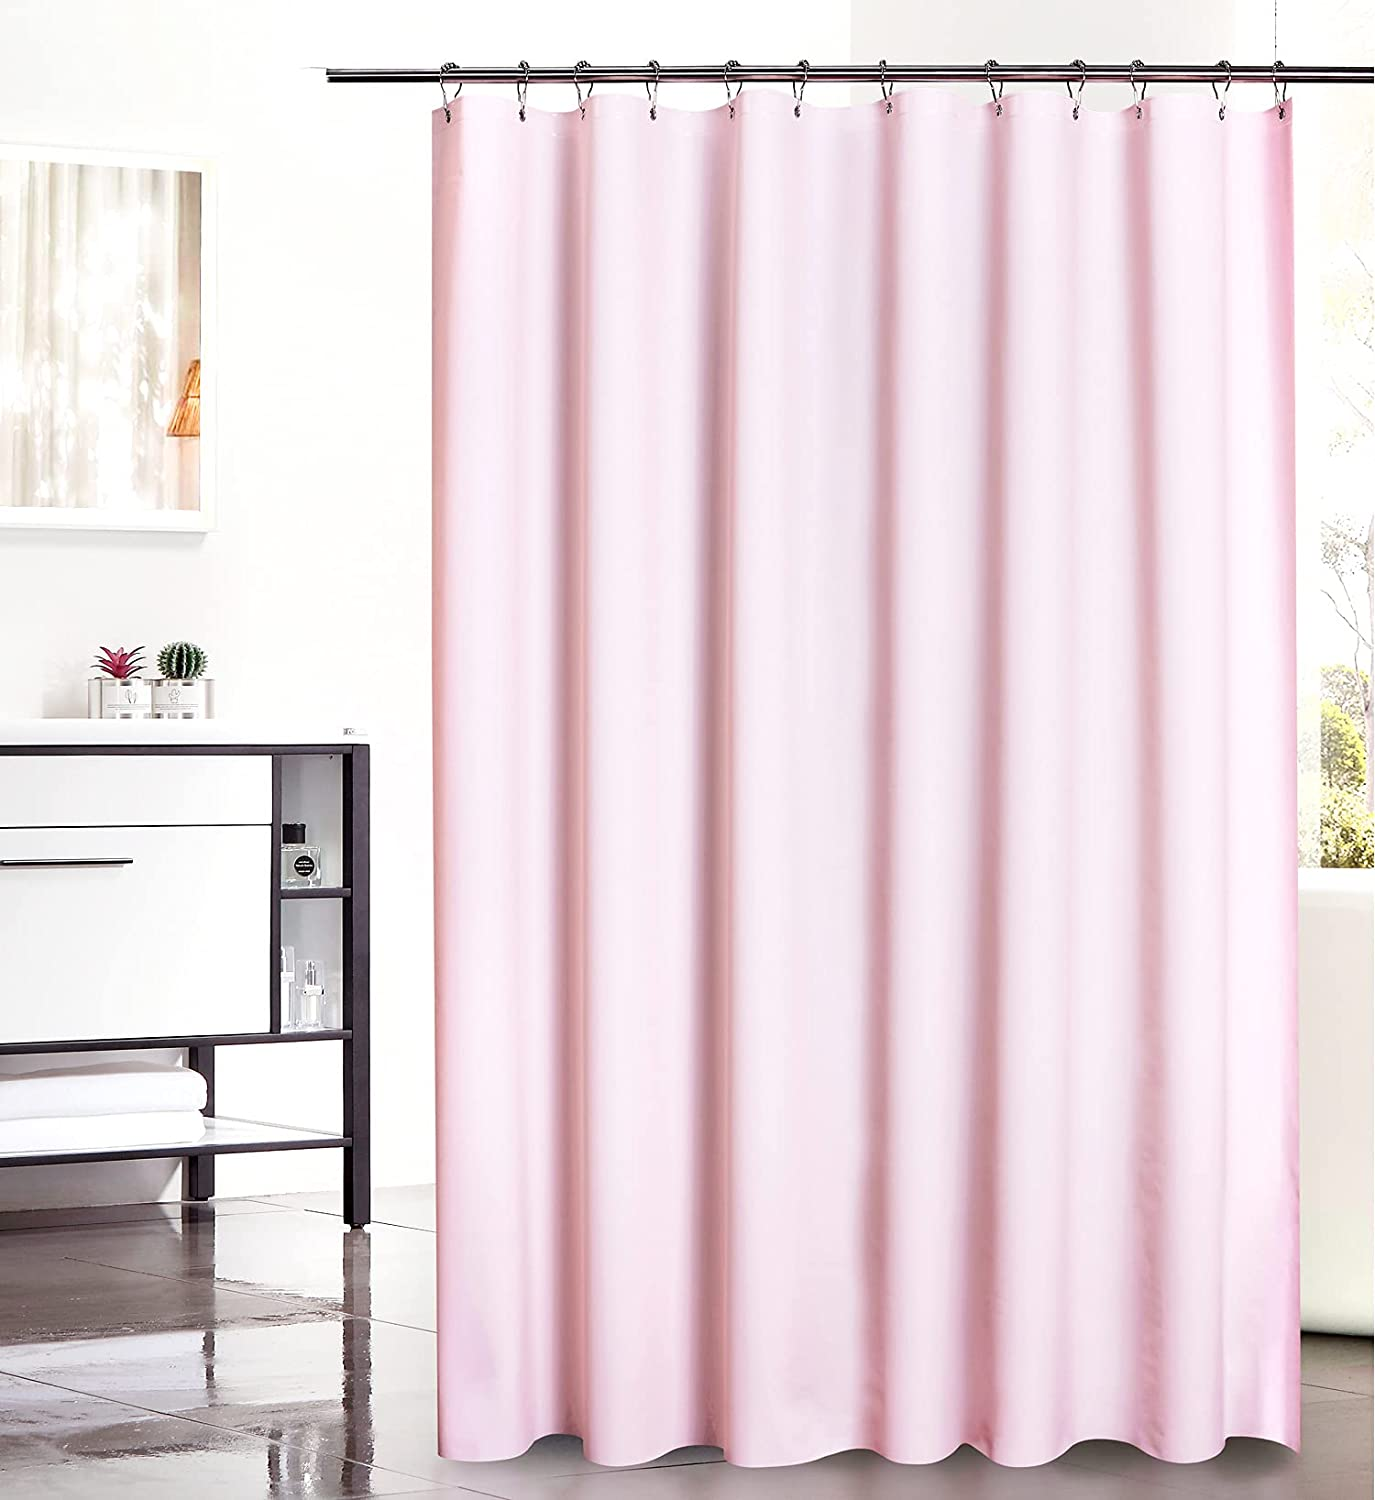 Amazon Brand - Umi Shower Curtains, Waterproof, Mould and Mildew Resistant, Shower Curtain Liners, Bath Curtains - Hexagon Pink, 180x180cm Hexagon Pink 180x180 cm